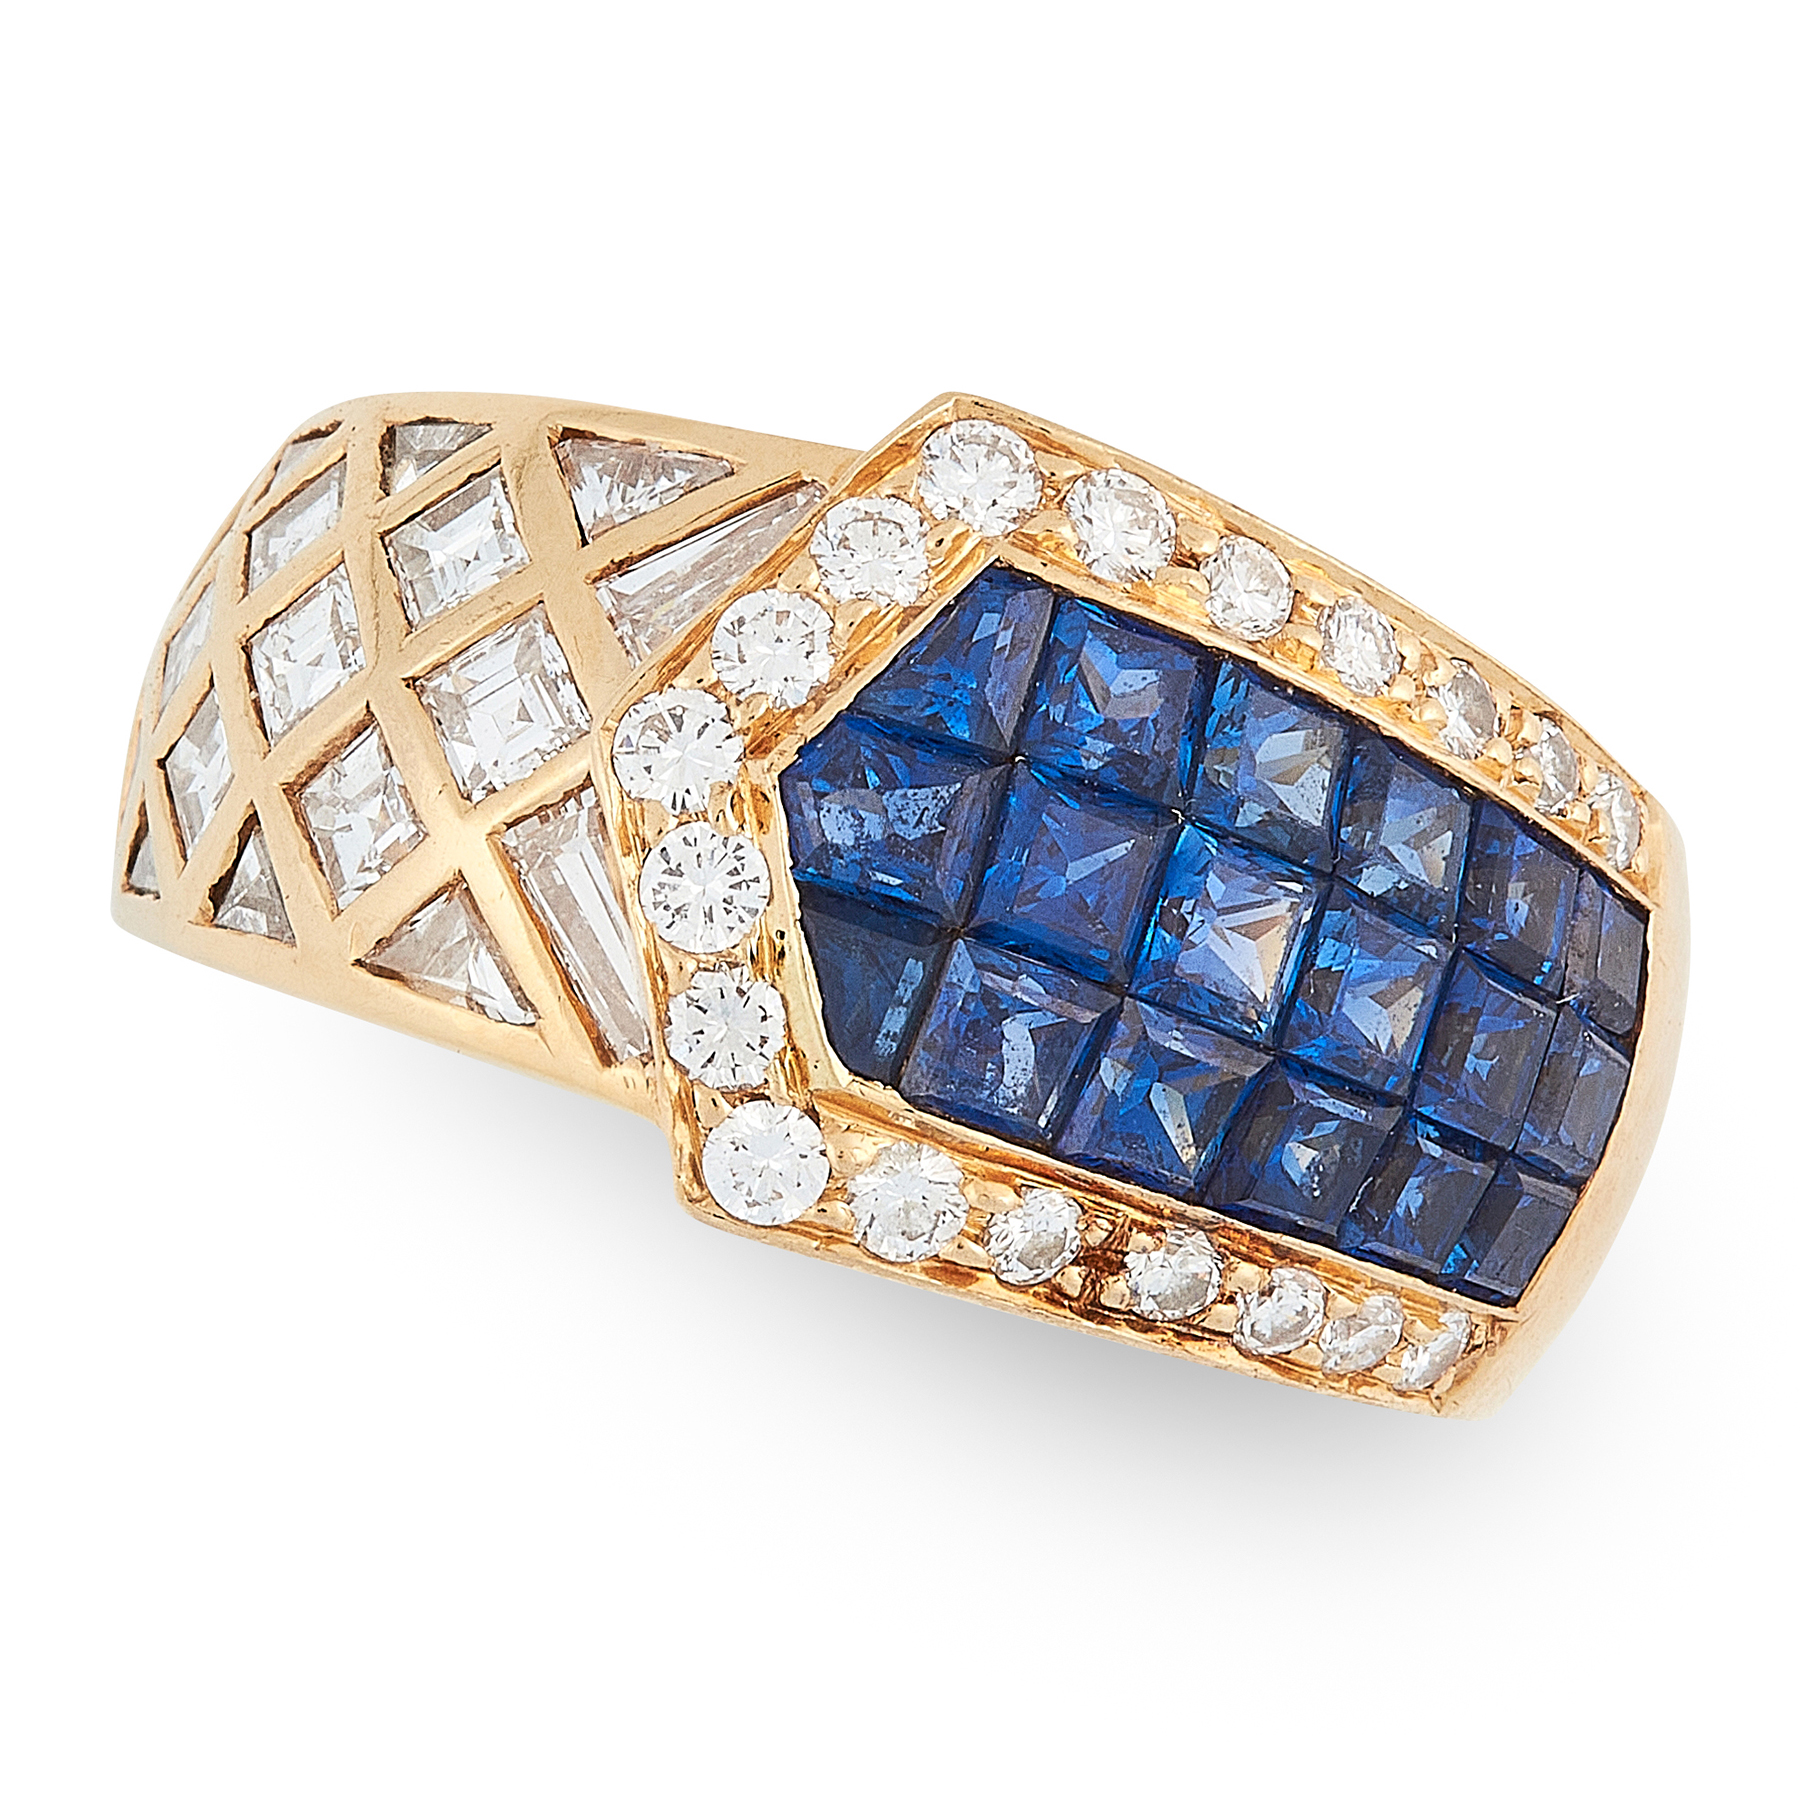 A SAPPHIRE AND DIAMOND DRESS RING in 18ct yellow gold, the tapered overlapping body mystery set with